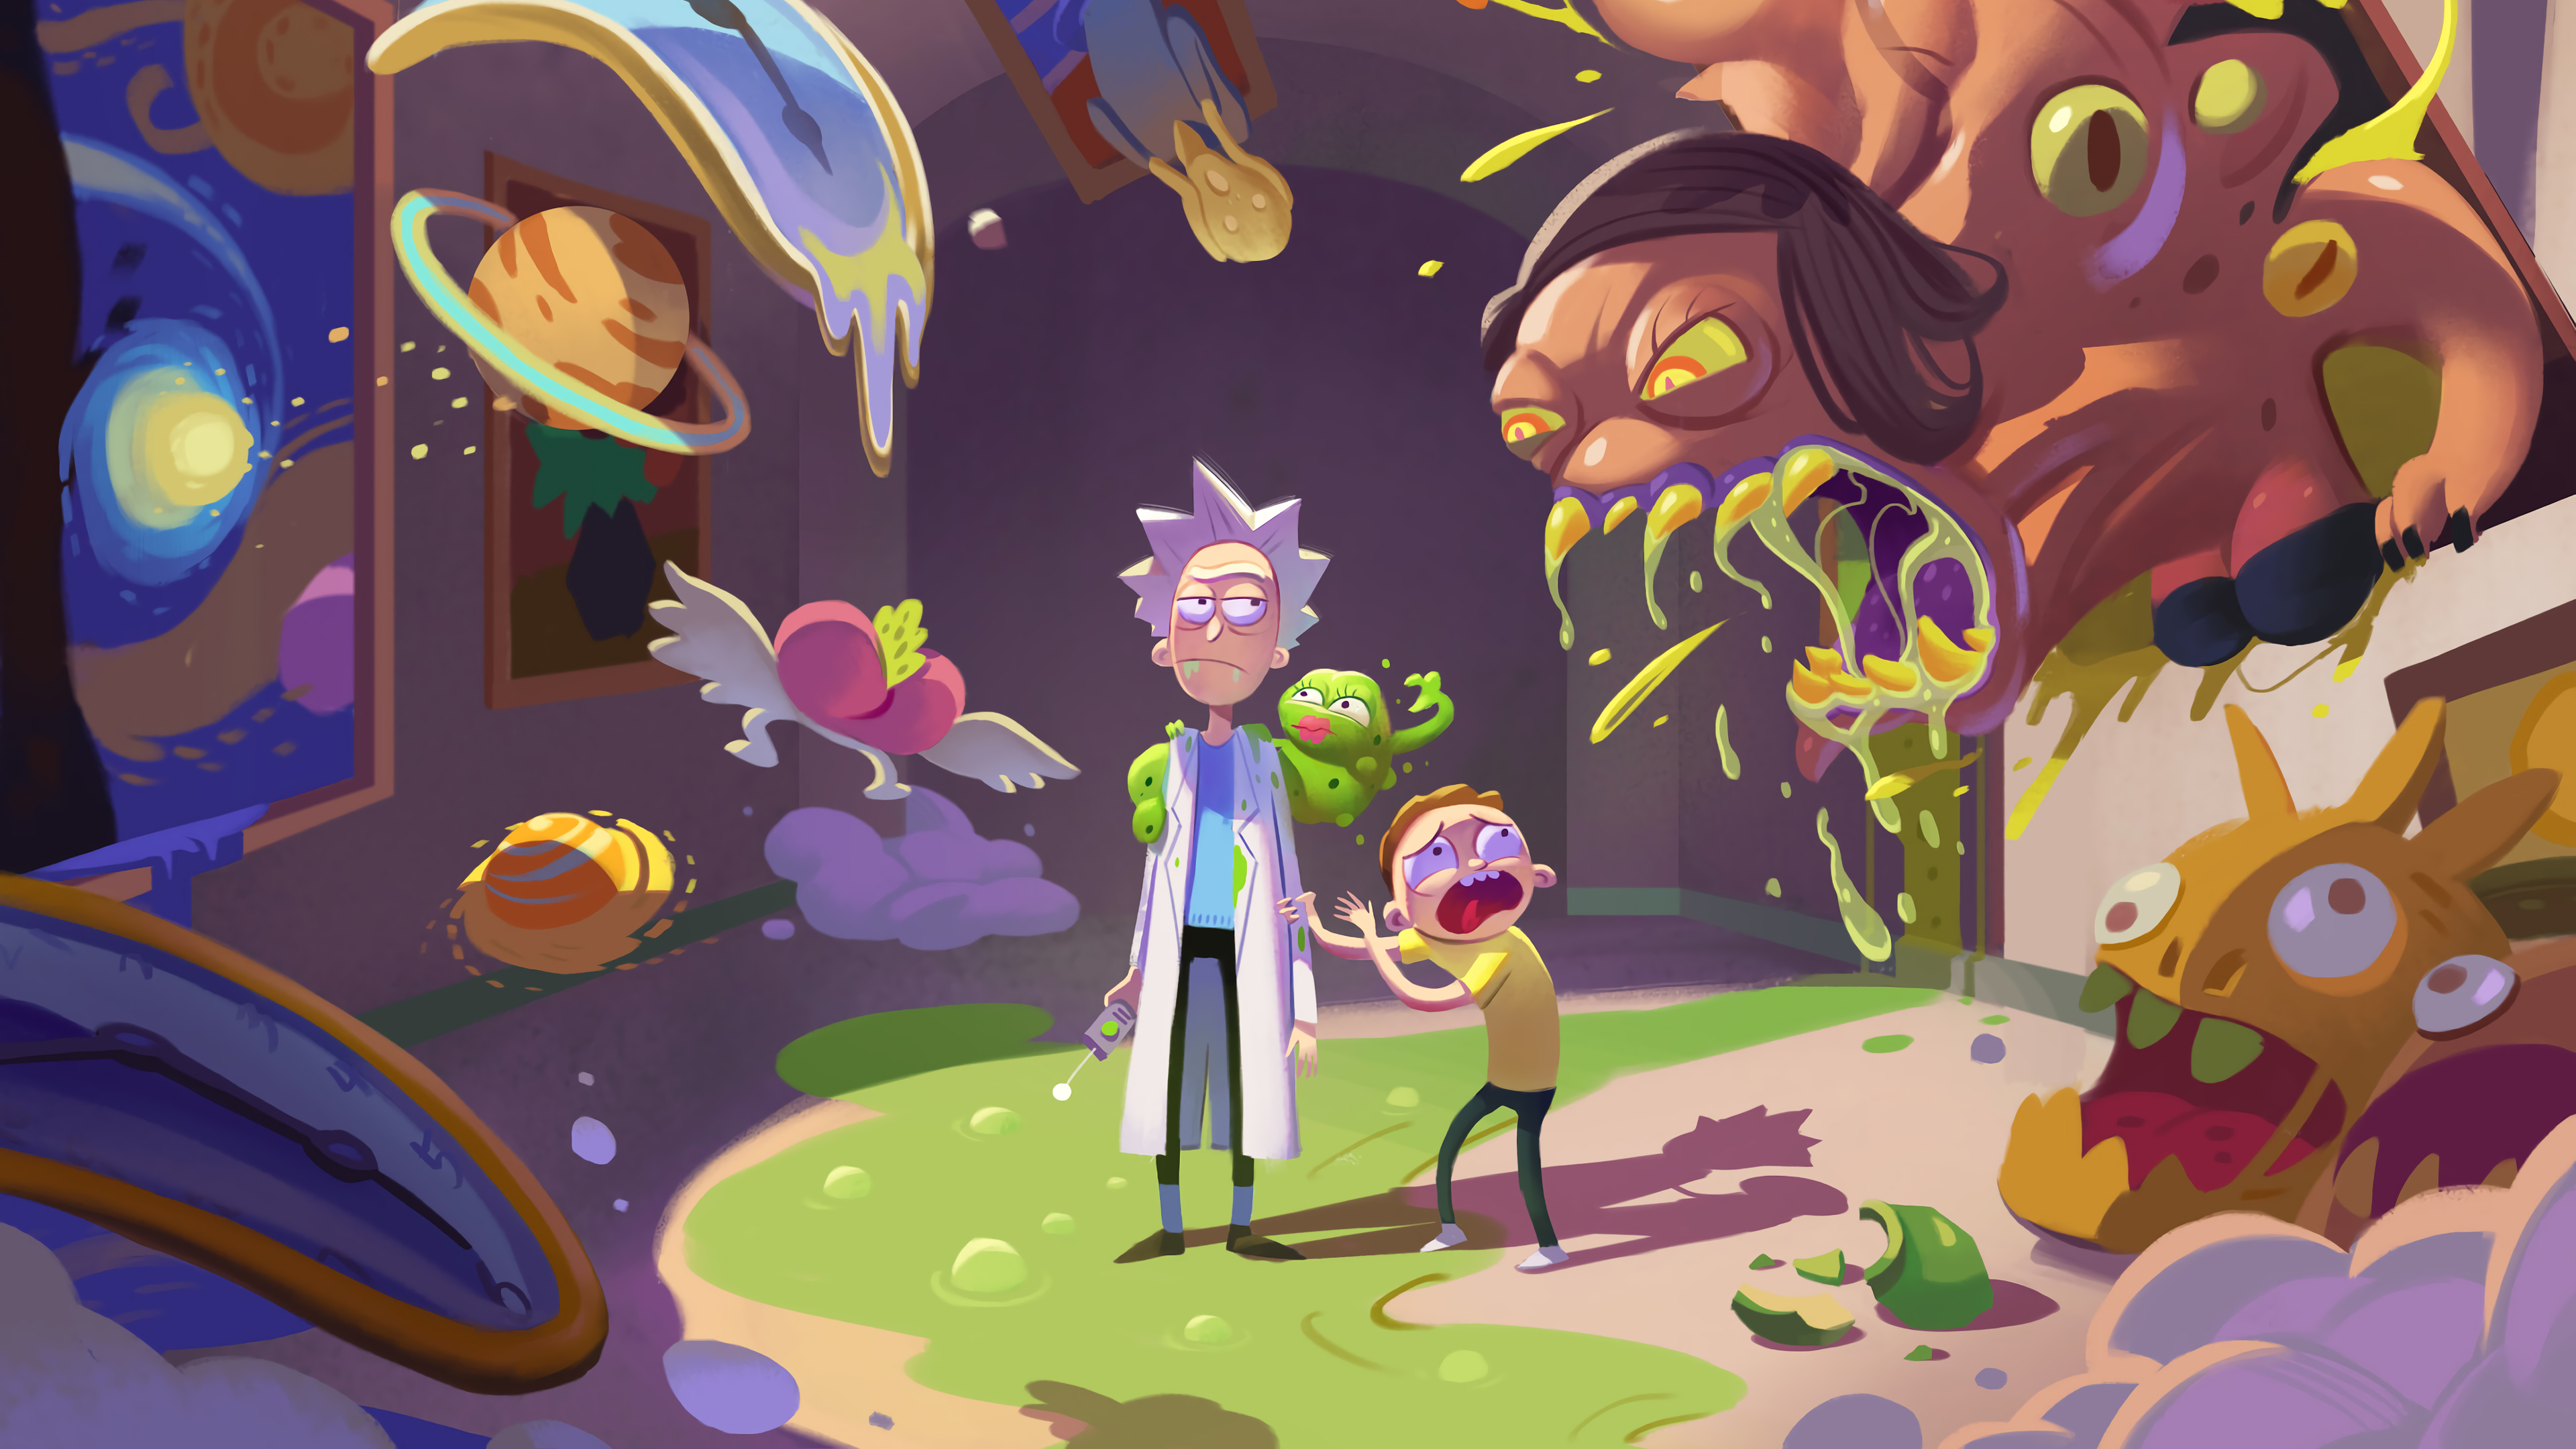 Wallpaper 4k Rick And Morty Season 4 Rick And Morty 4k Wallpaper